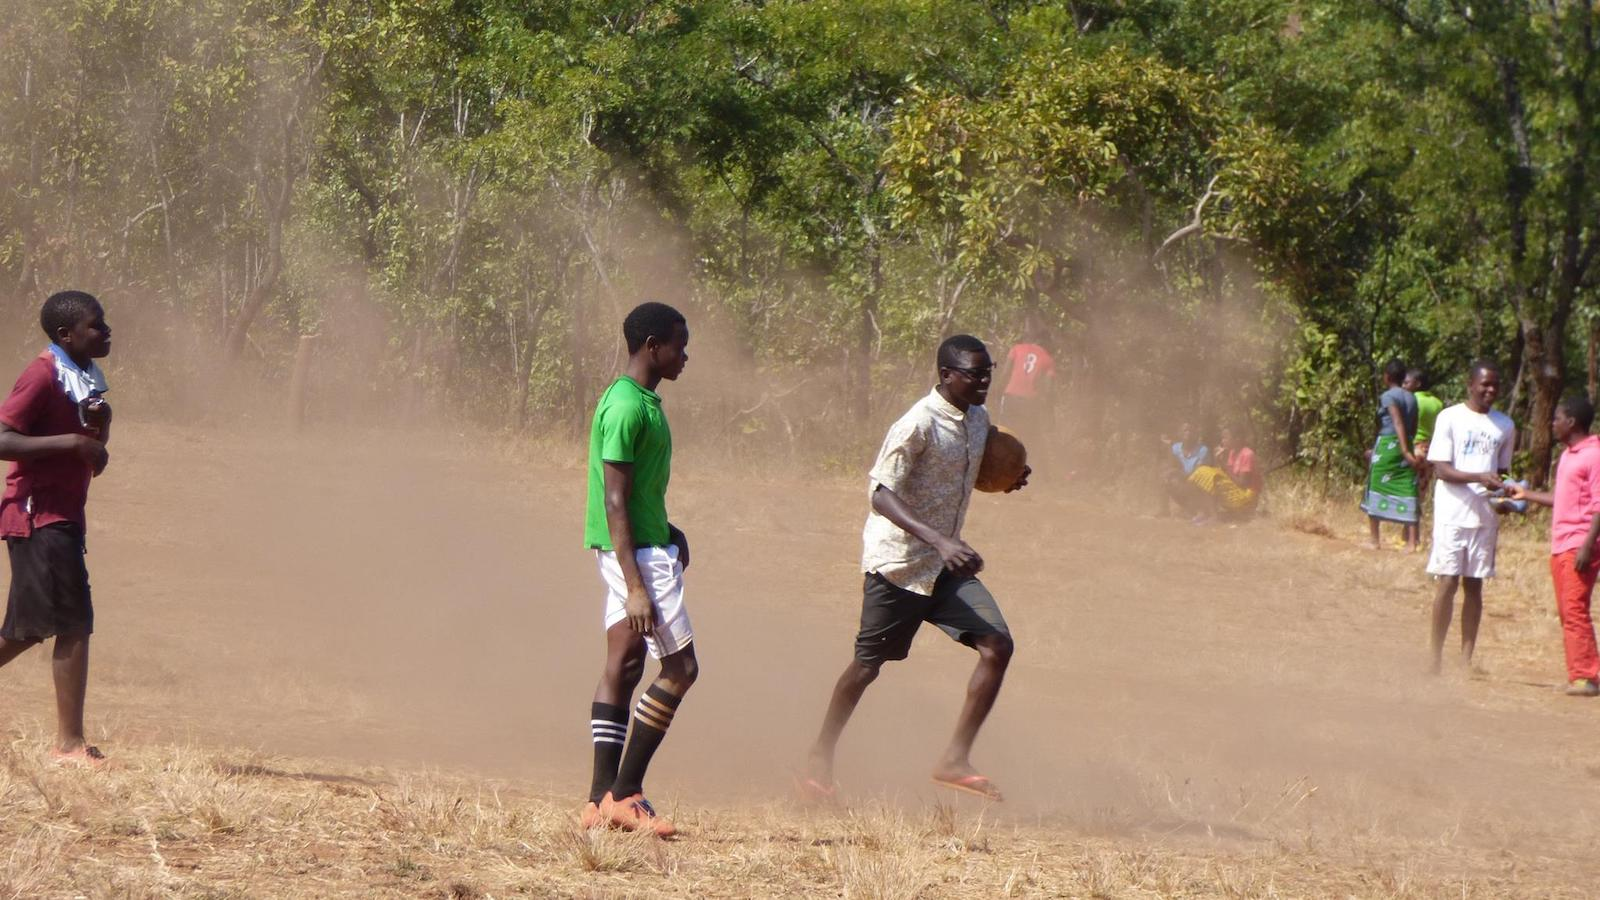 A soccer tournament in Mozambique